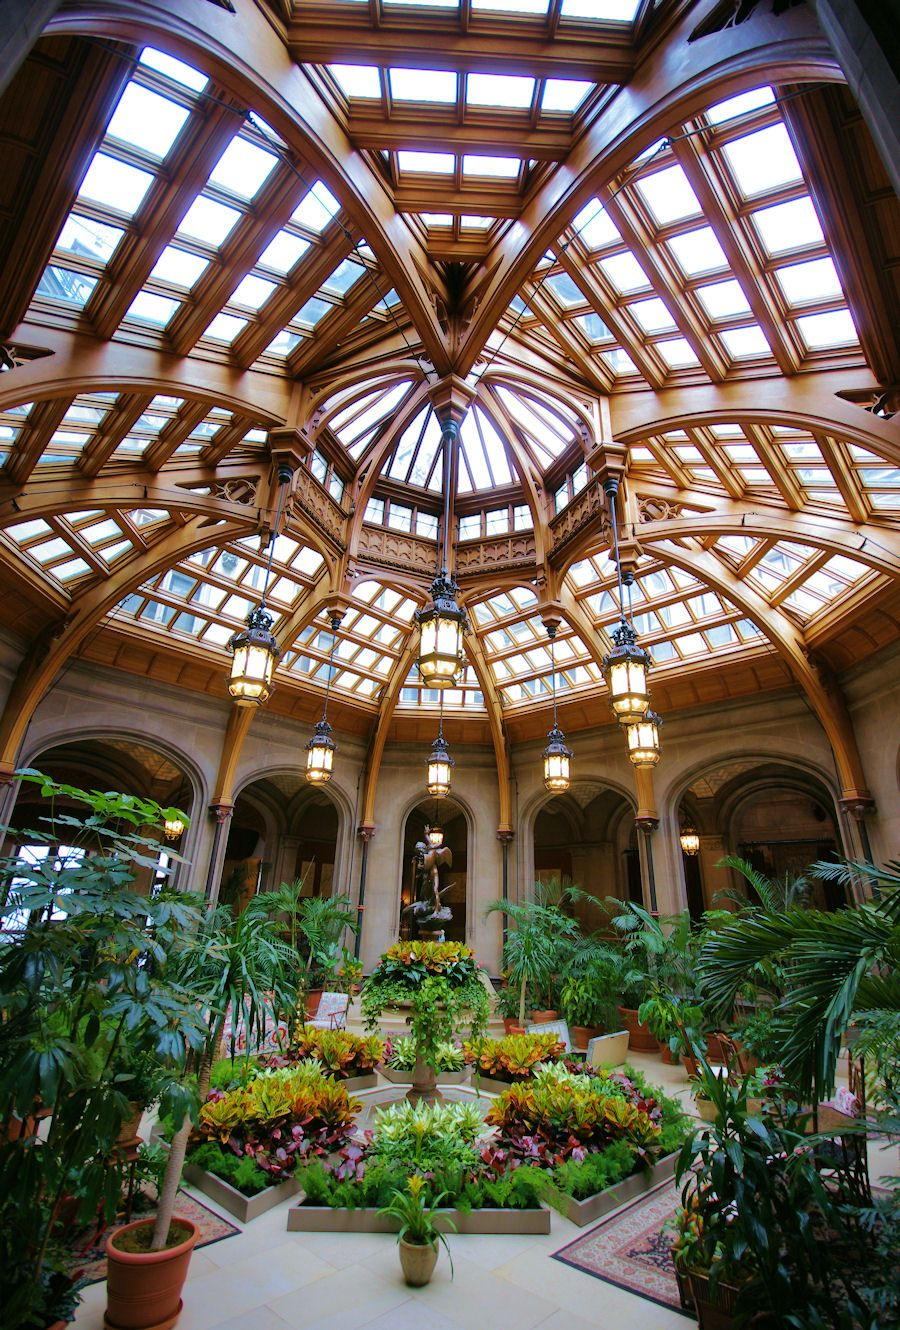 Winter Garden inside #BiltmoreHouse in Asheville, North Carolina ...